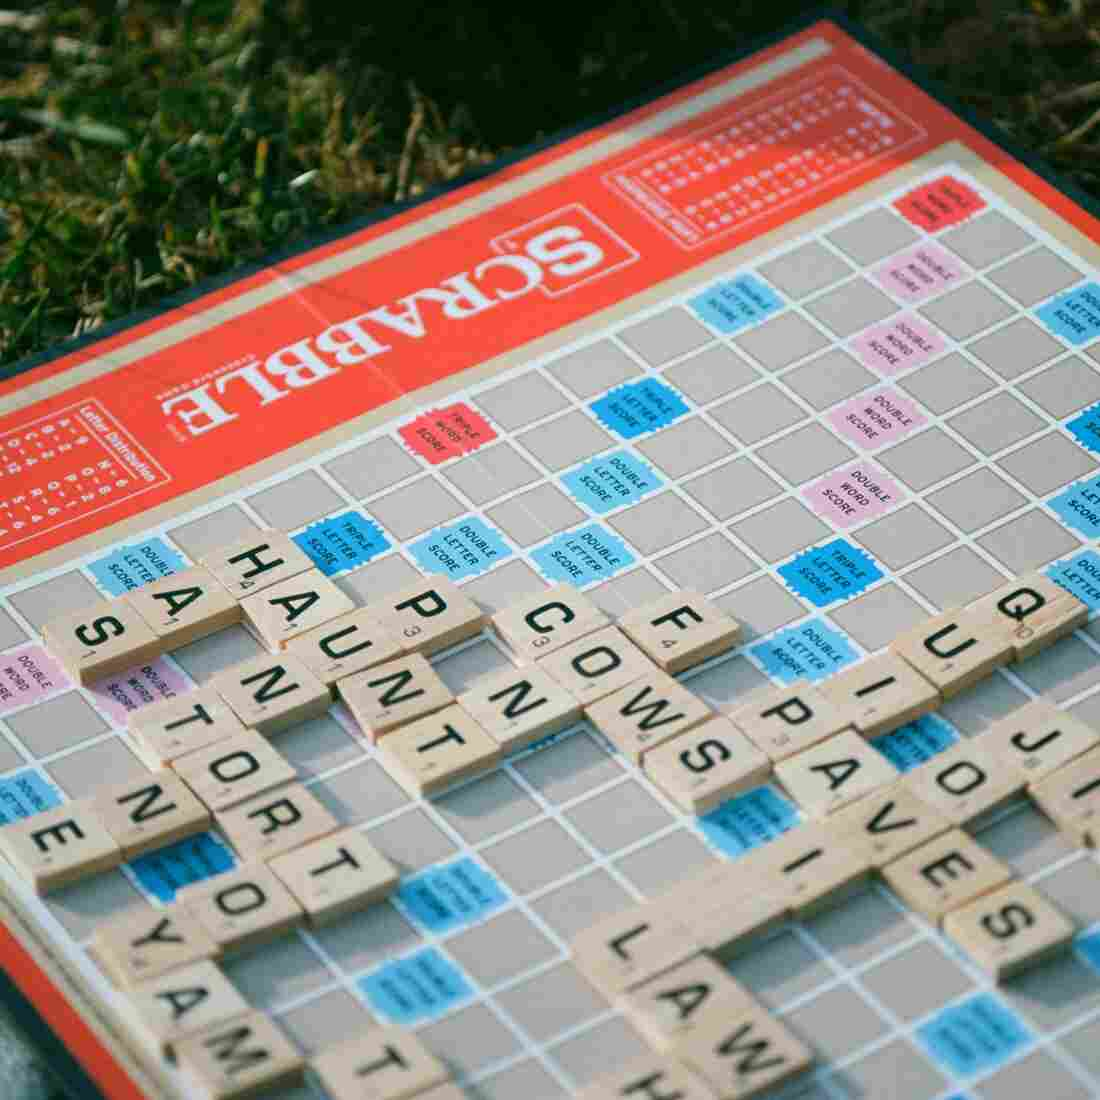 Scrabble players are drawing racial and ethnic insults from the game